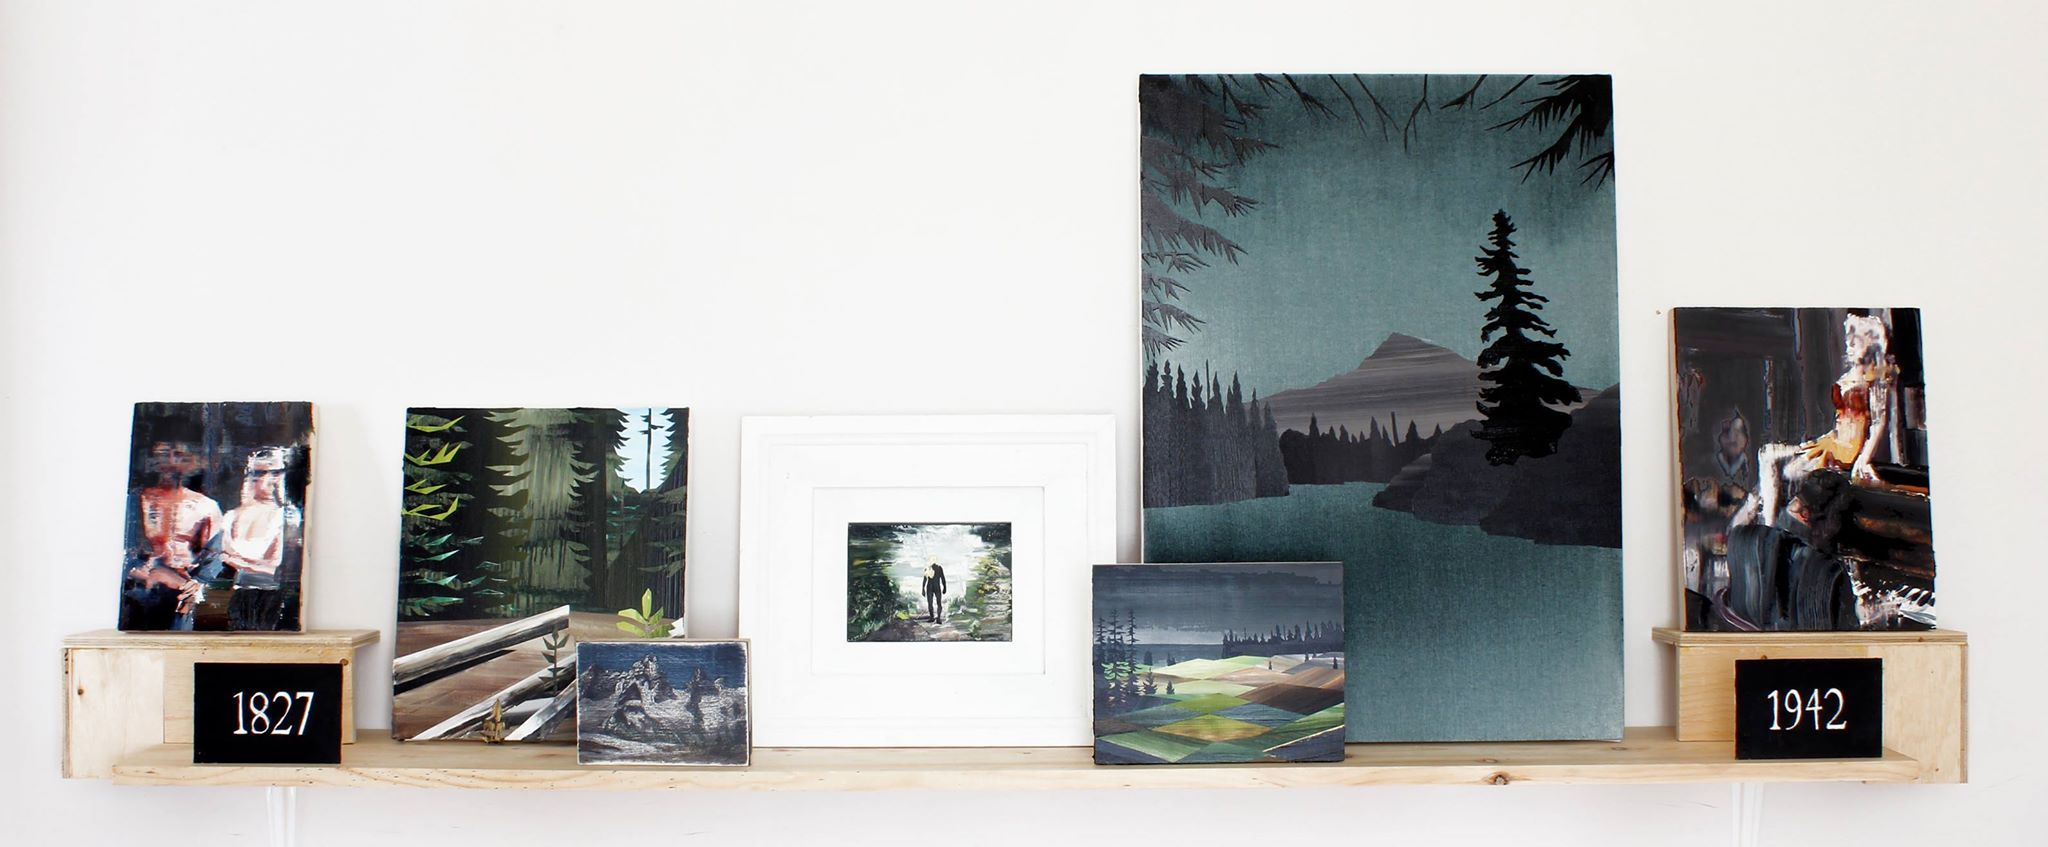 Gavin Lynch, The Pass (1794-present) (2014-15),mixed-media painting installation comprised of oil and acrylic paintings on canvas and woodpanel